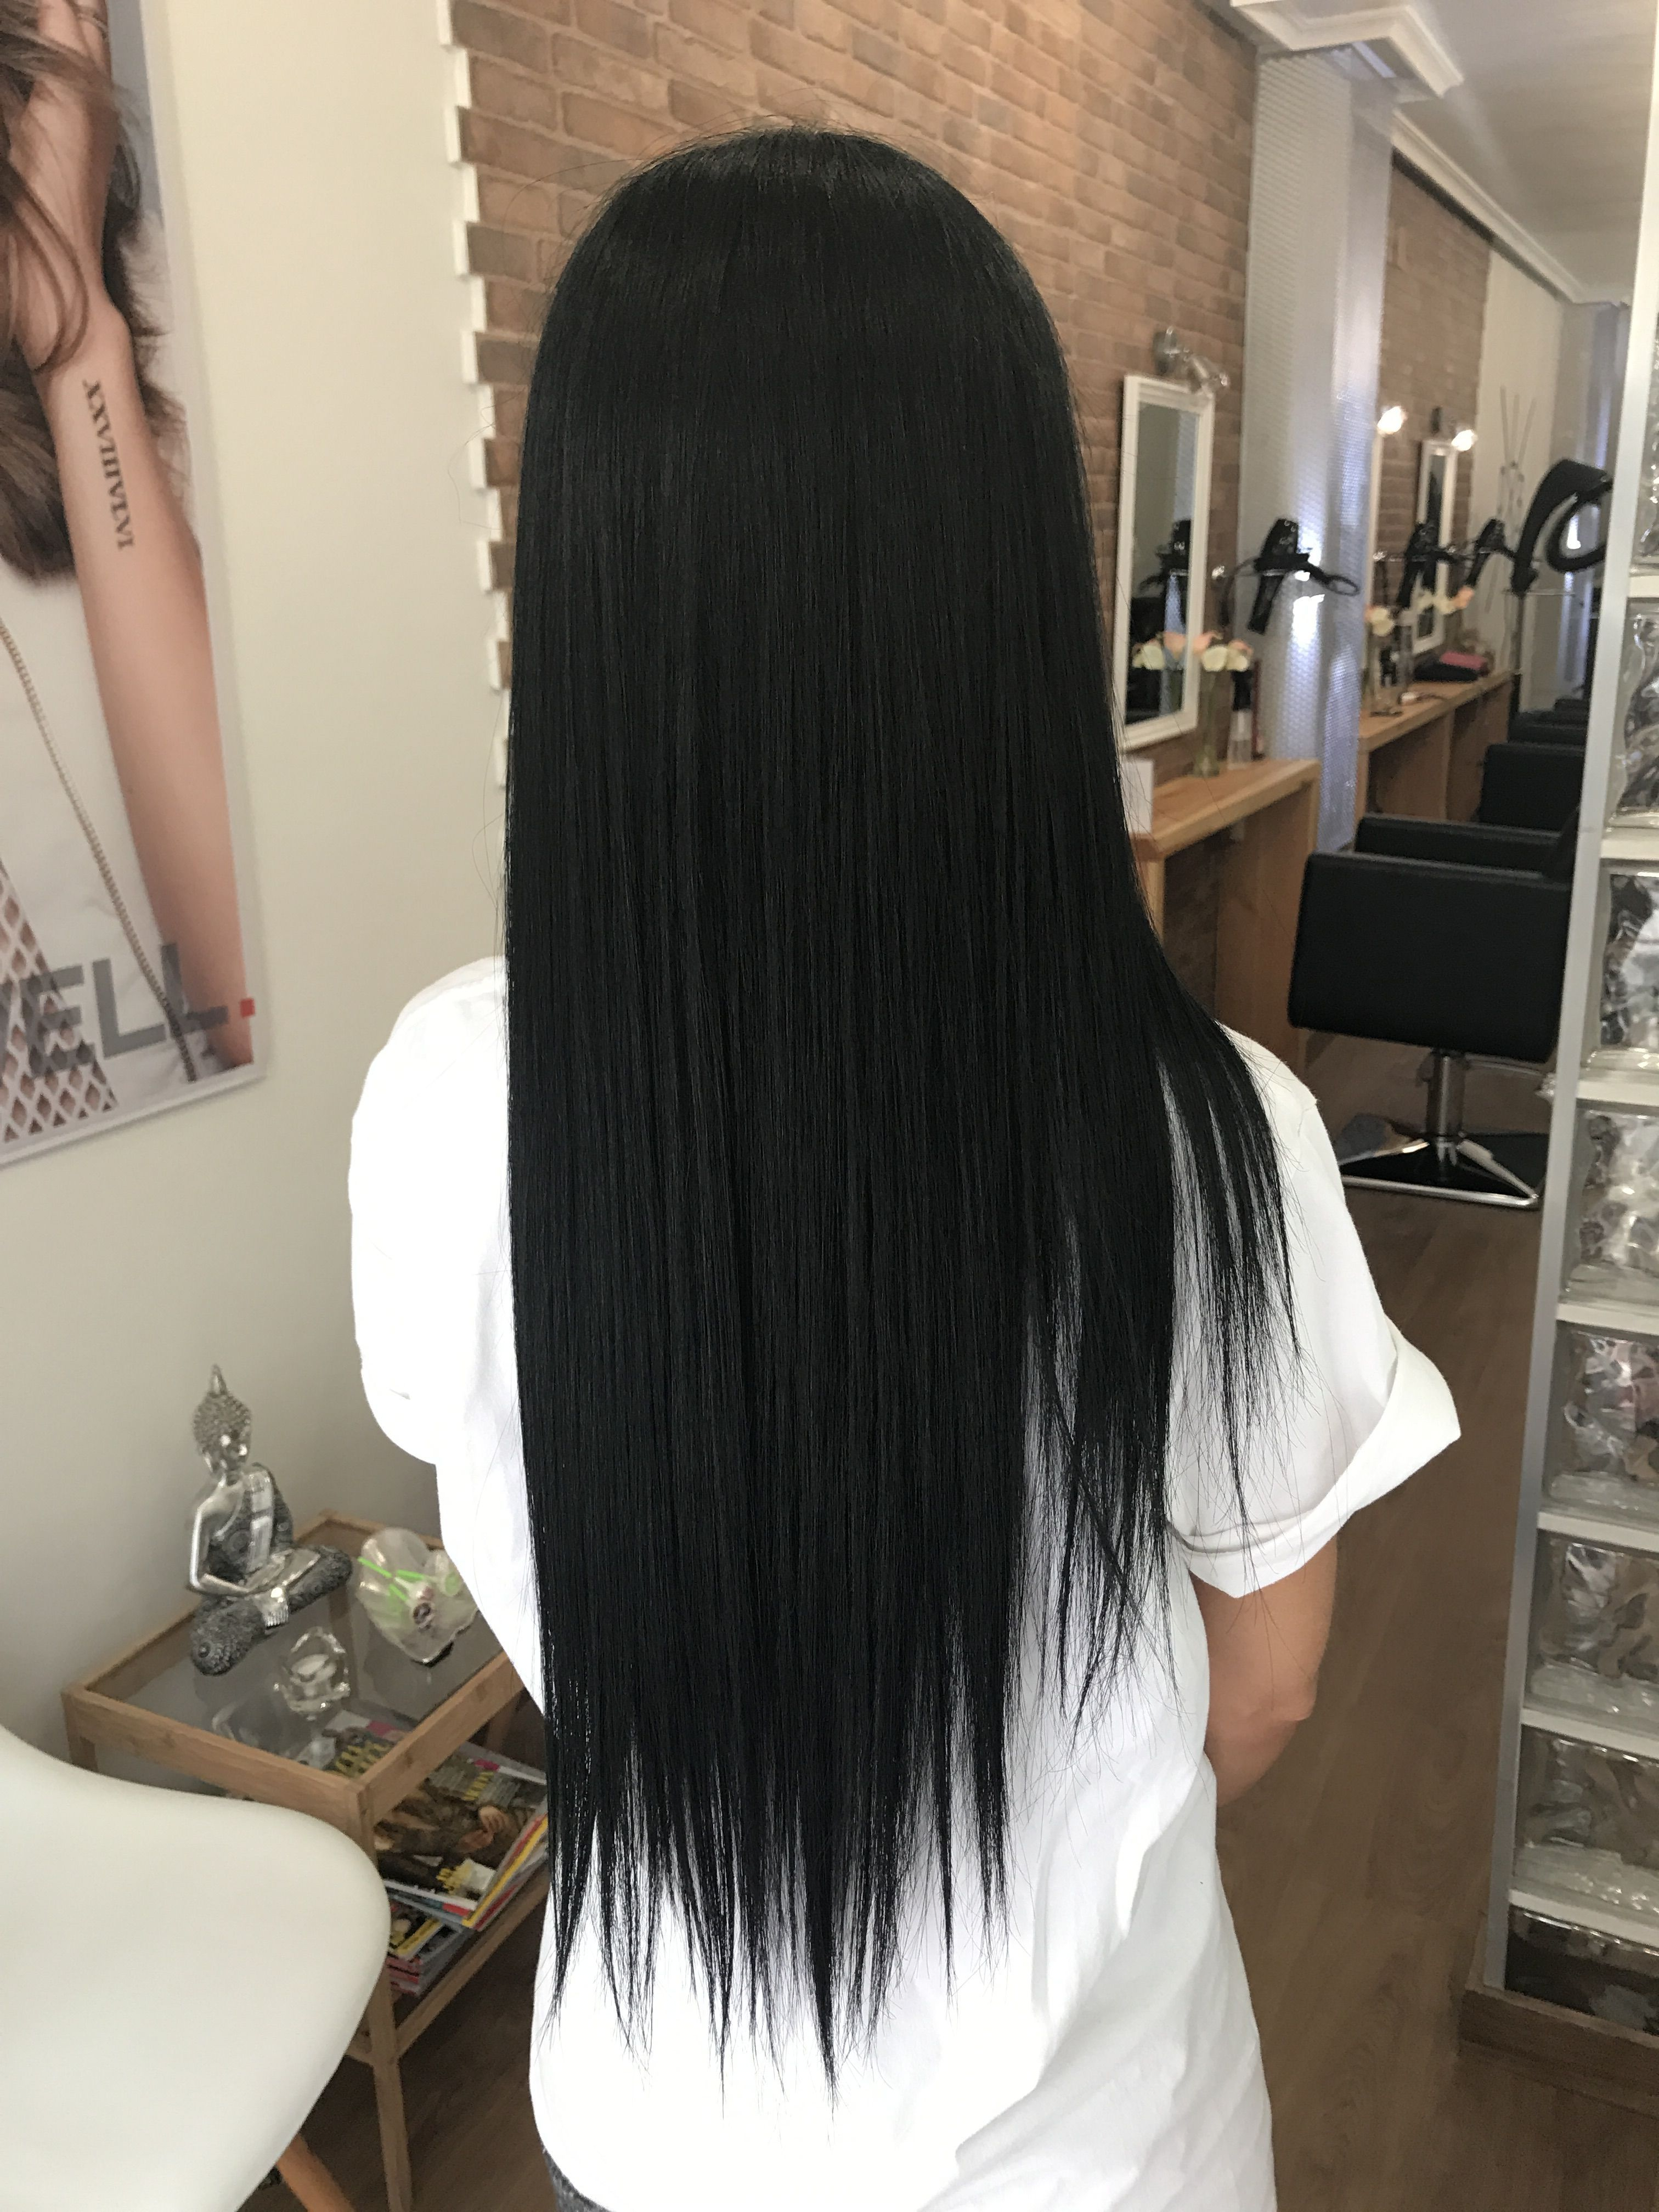 2020 New Straight Wigs Black Long Hair Wigs For Round Face African American Yaki Bang Wig